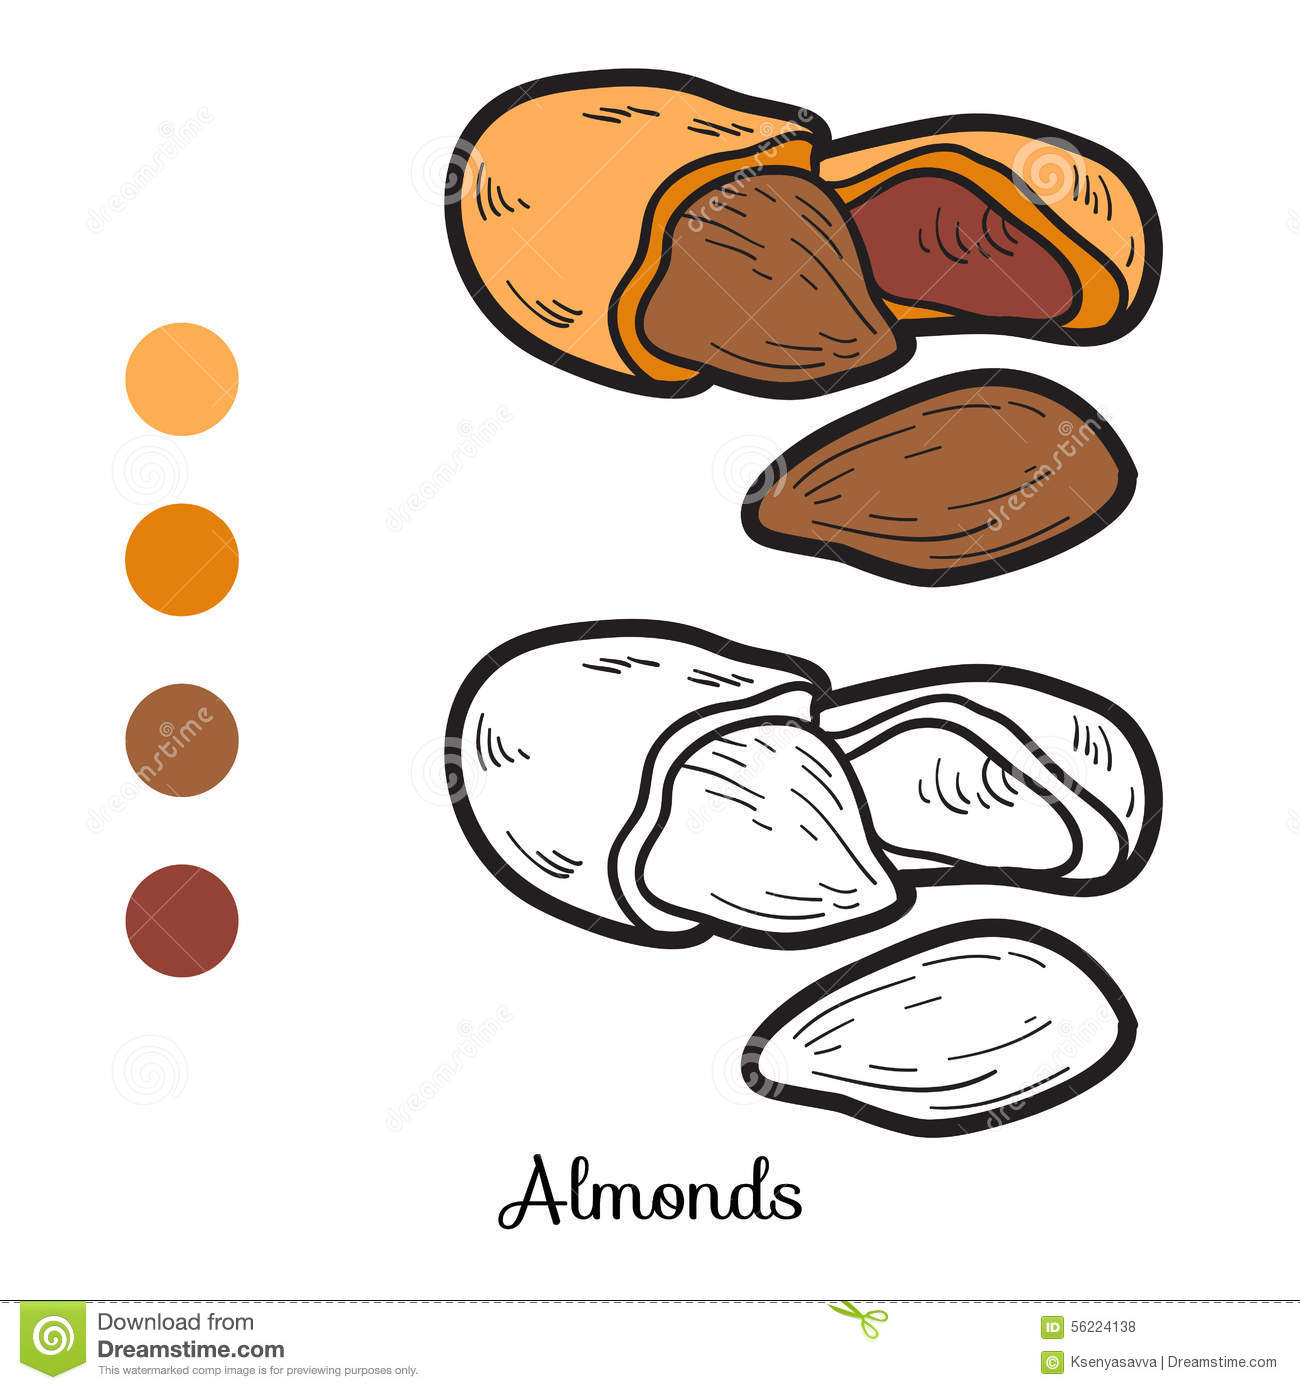 Almond coloring #8, Download drawings